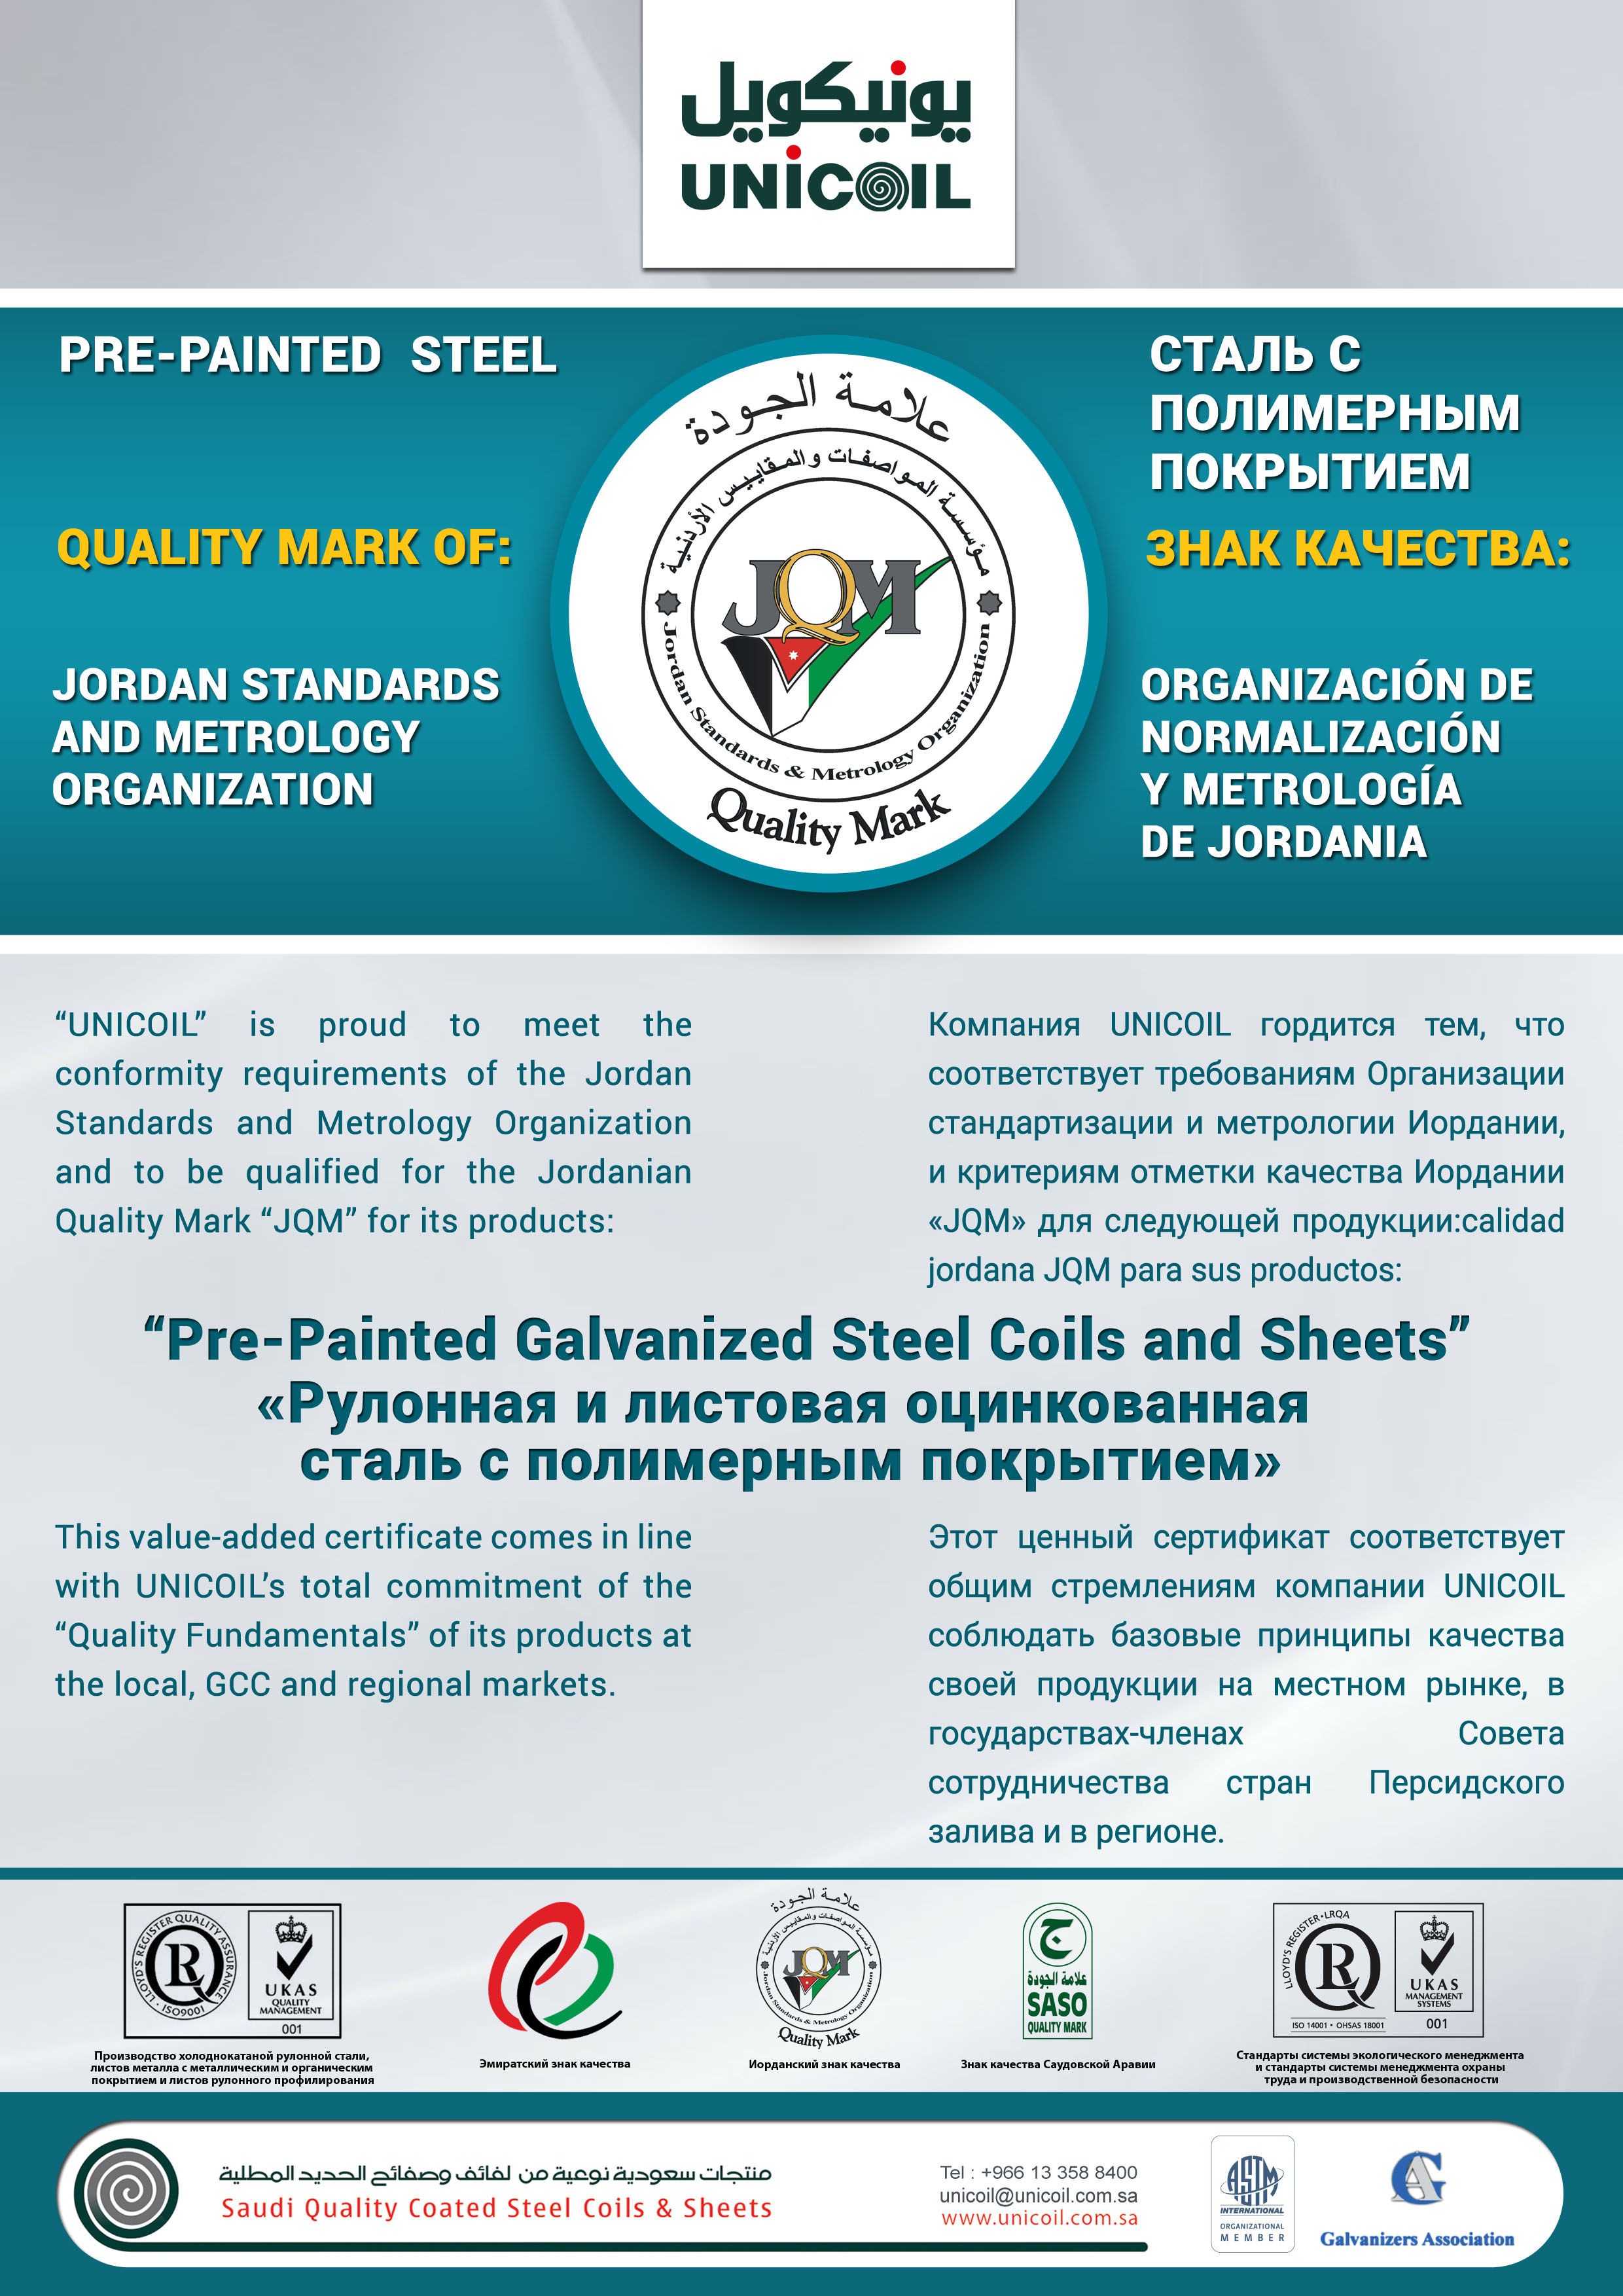 PPGI Products Accredited with JQM